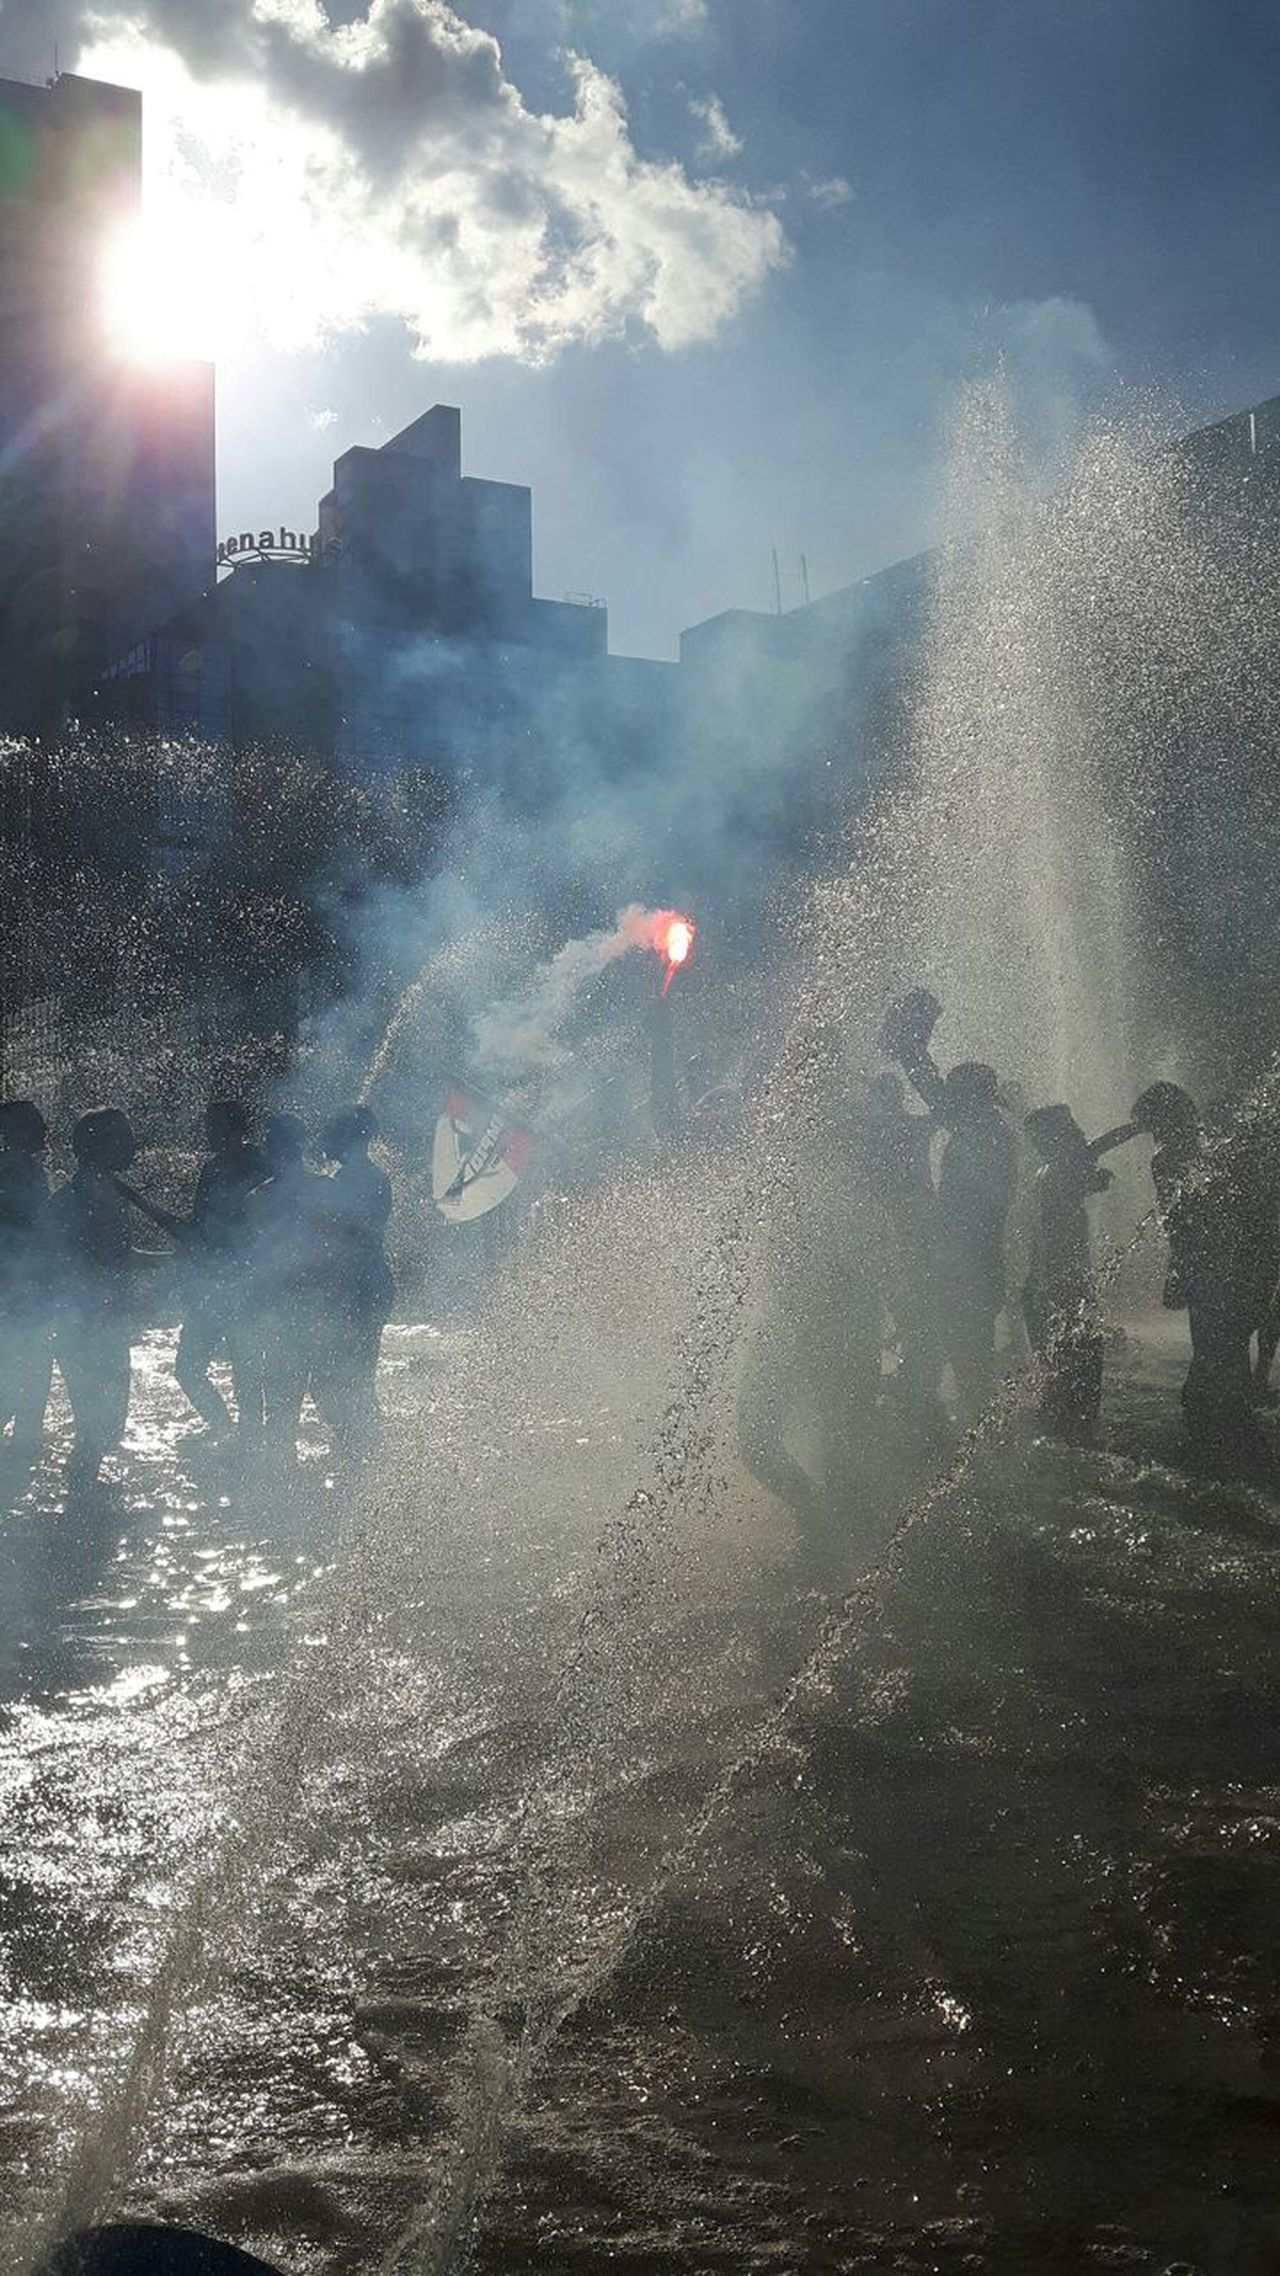 The Street Photographer - 2017 EyeEm Awards Football Fans Celebrating Feyenoord Champions Dancing In Fountain Dancing In The Street Large Group Of People Bengal Firework The Photojournalist - 2017 EyeEm Awards The Great Outdoors - 2017 EyeEm Awards